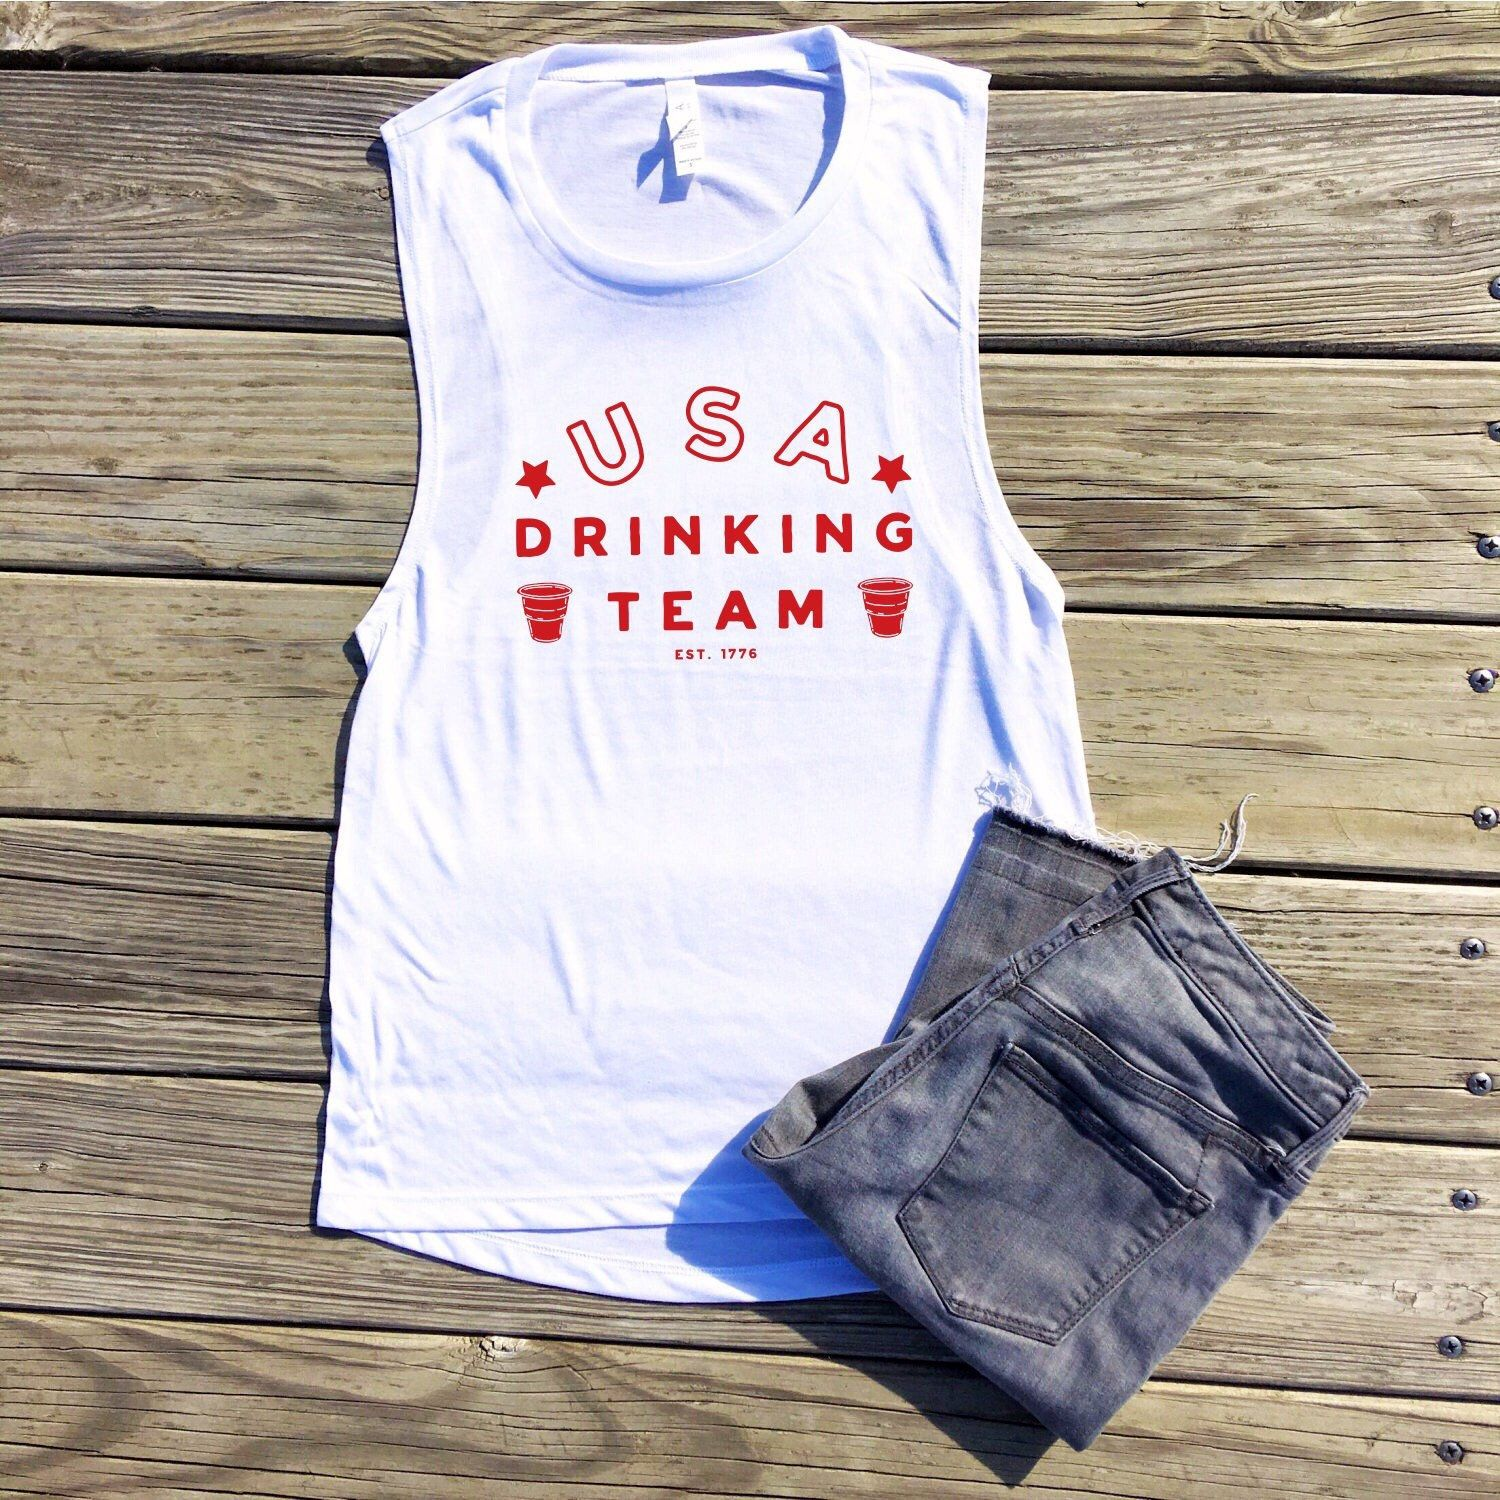 45730196689a7 Usa drinking team